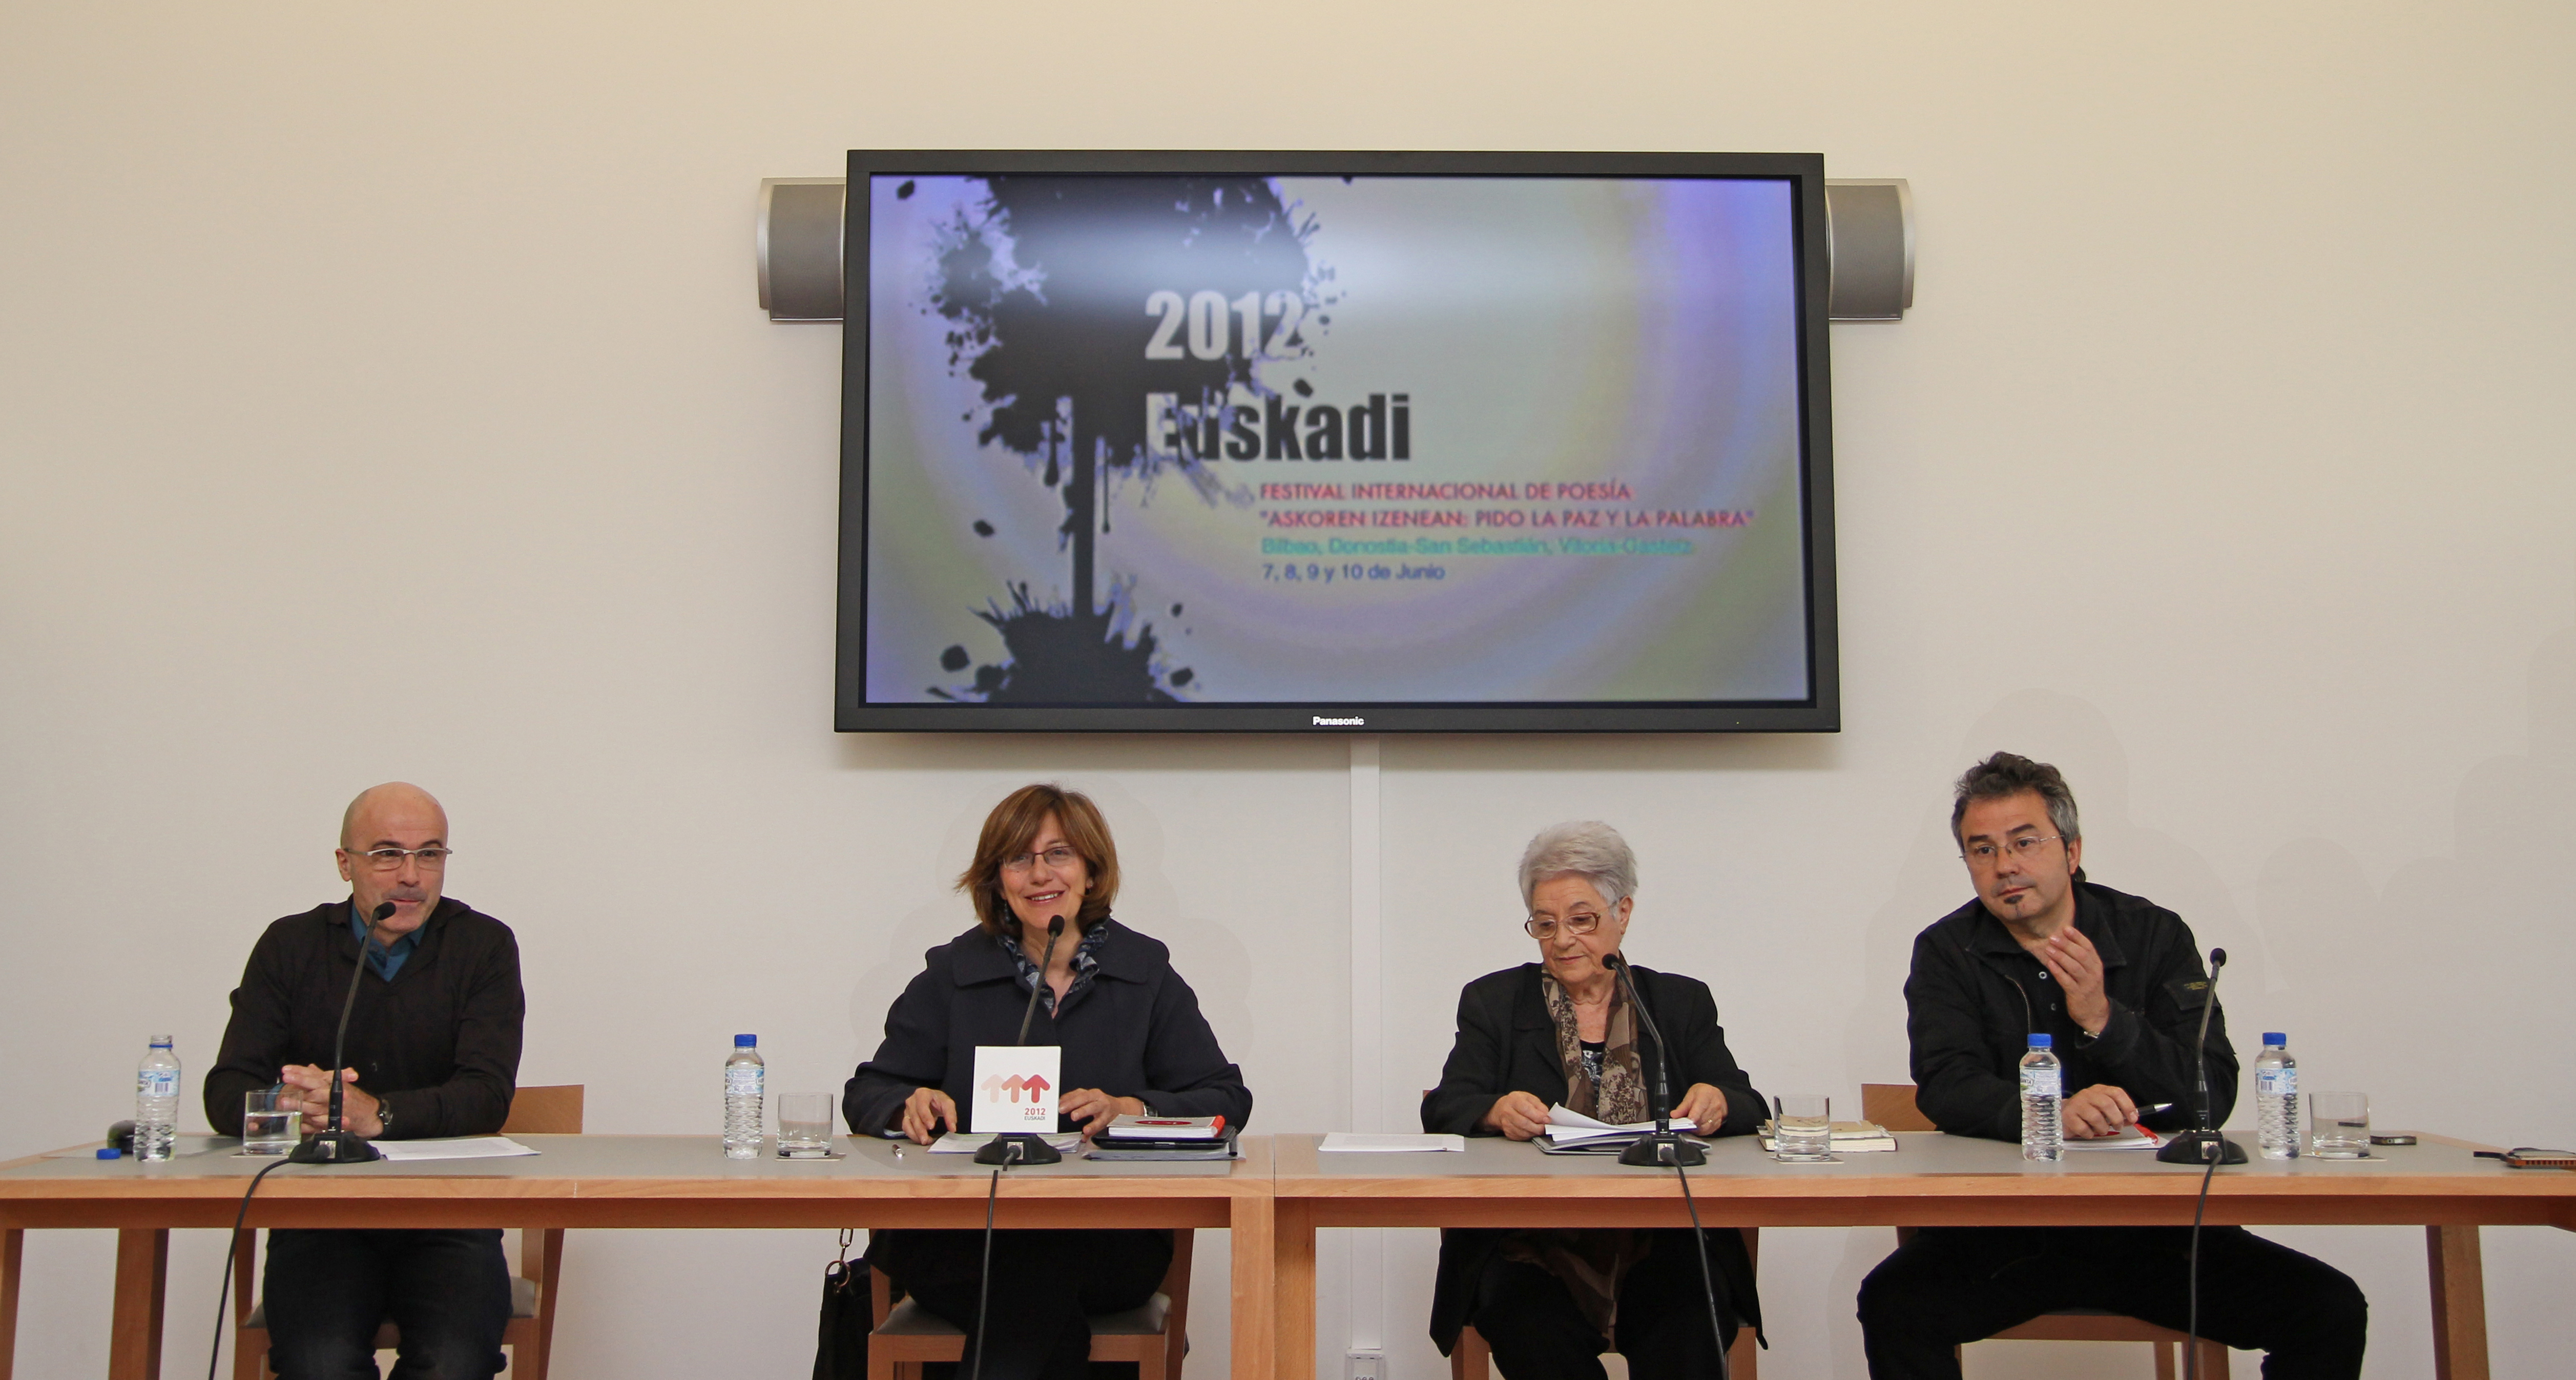 2012 Euskadi presenta el Festival Internacional de Poesa 'Askoren Izenean: Pido la Paz y la Palabra'